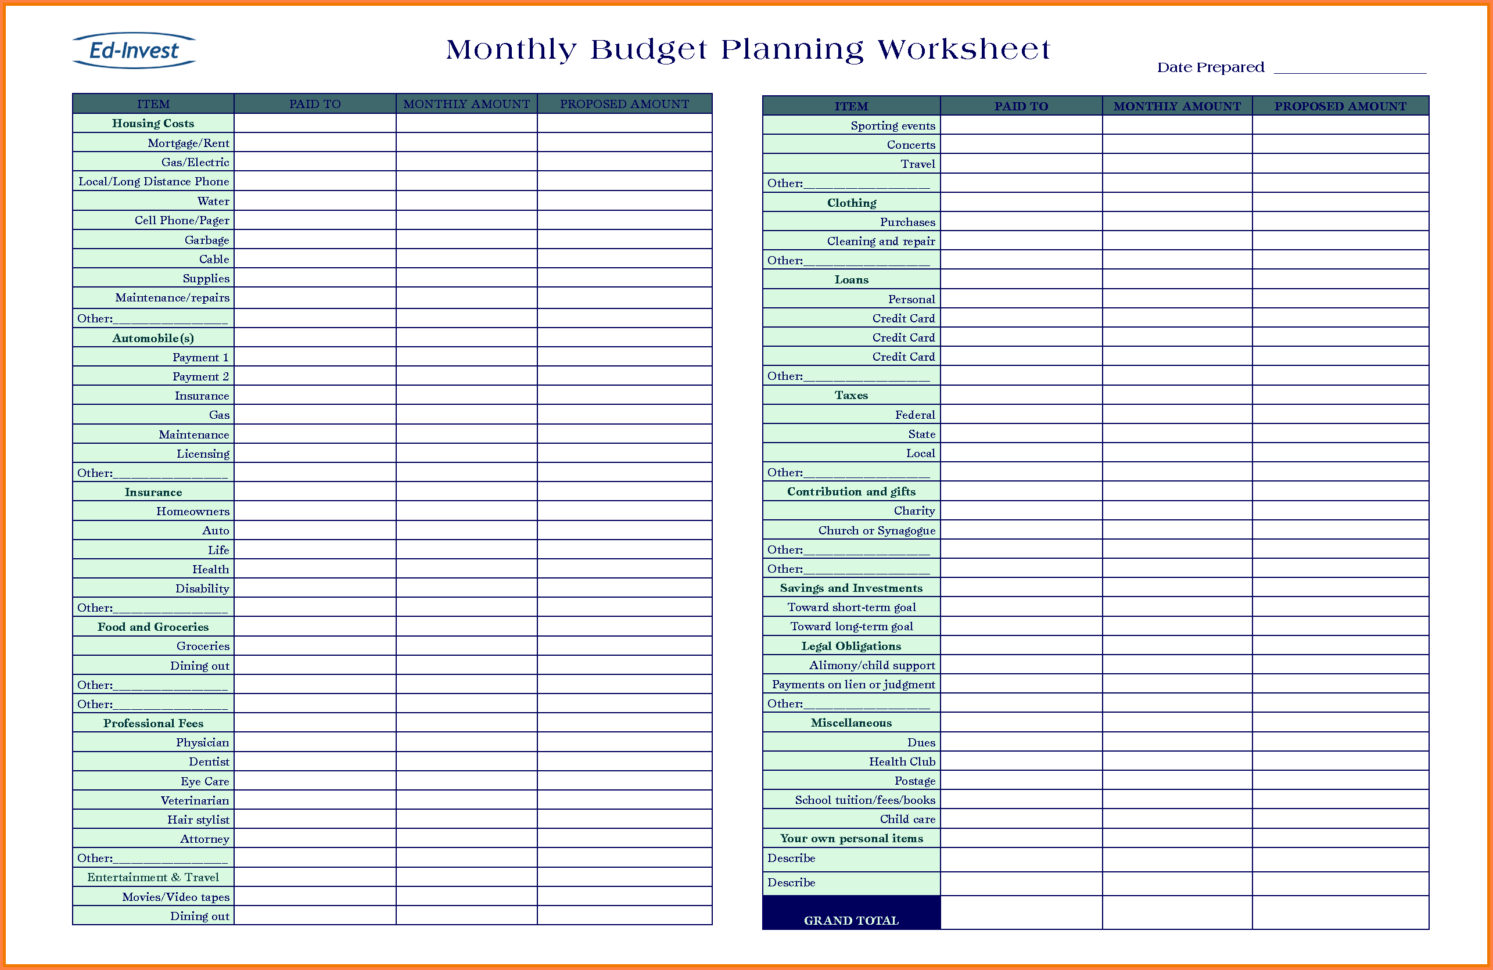 Budget Planning Spreadsheet Plannerorksheet Picture Highest Quality With Budget Planner Spreadsheet